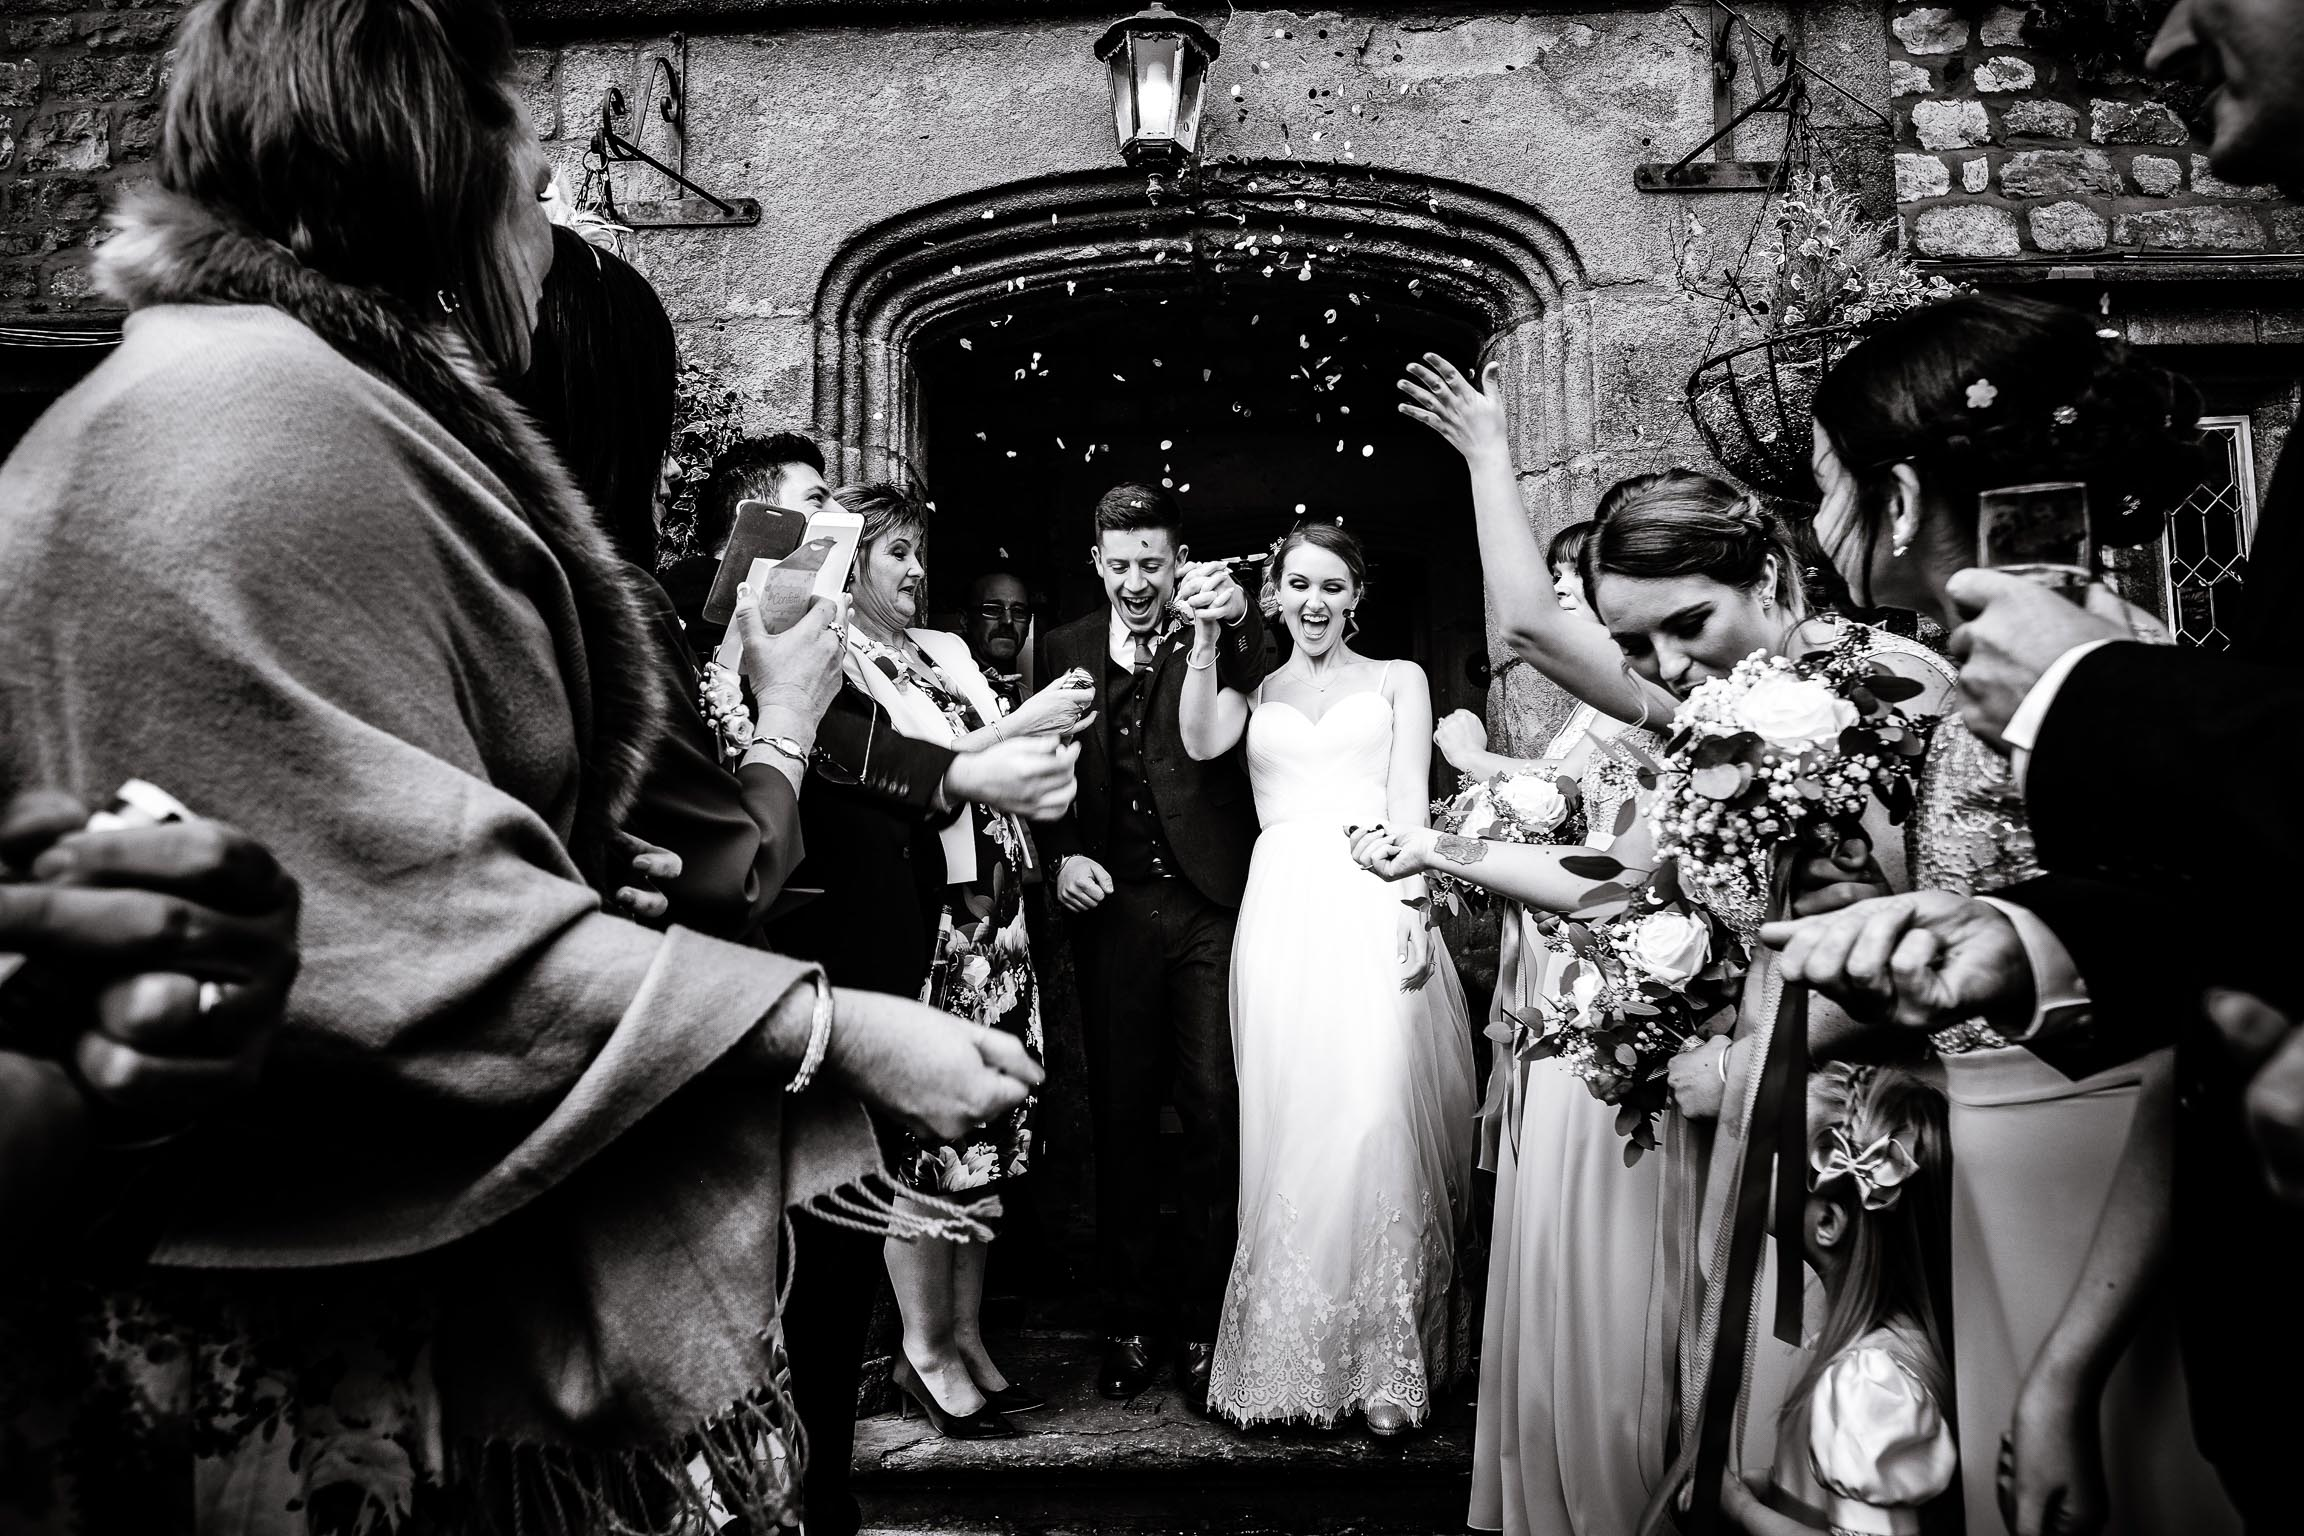 Stirk house clitheroe lancashire wedding photographer covering a documentary photography style  (49 of 85).jpg